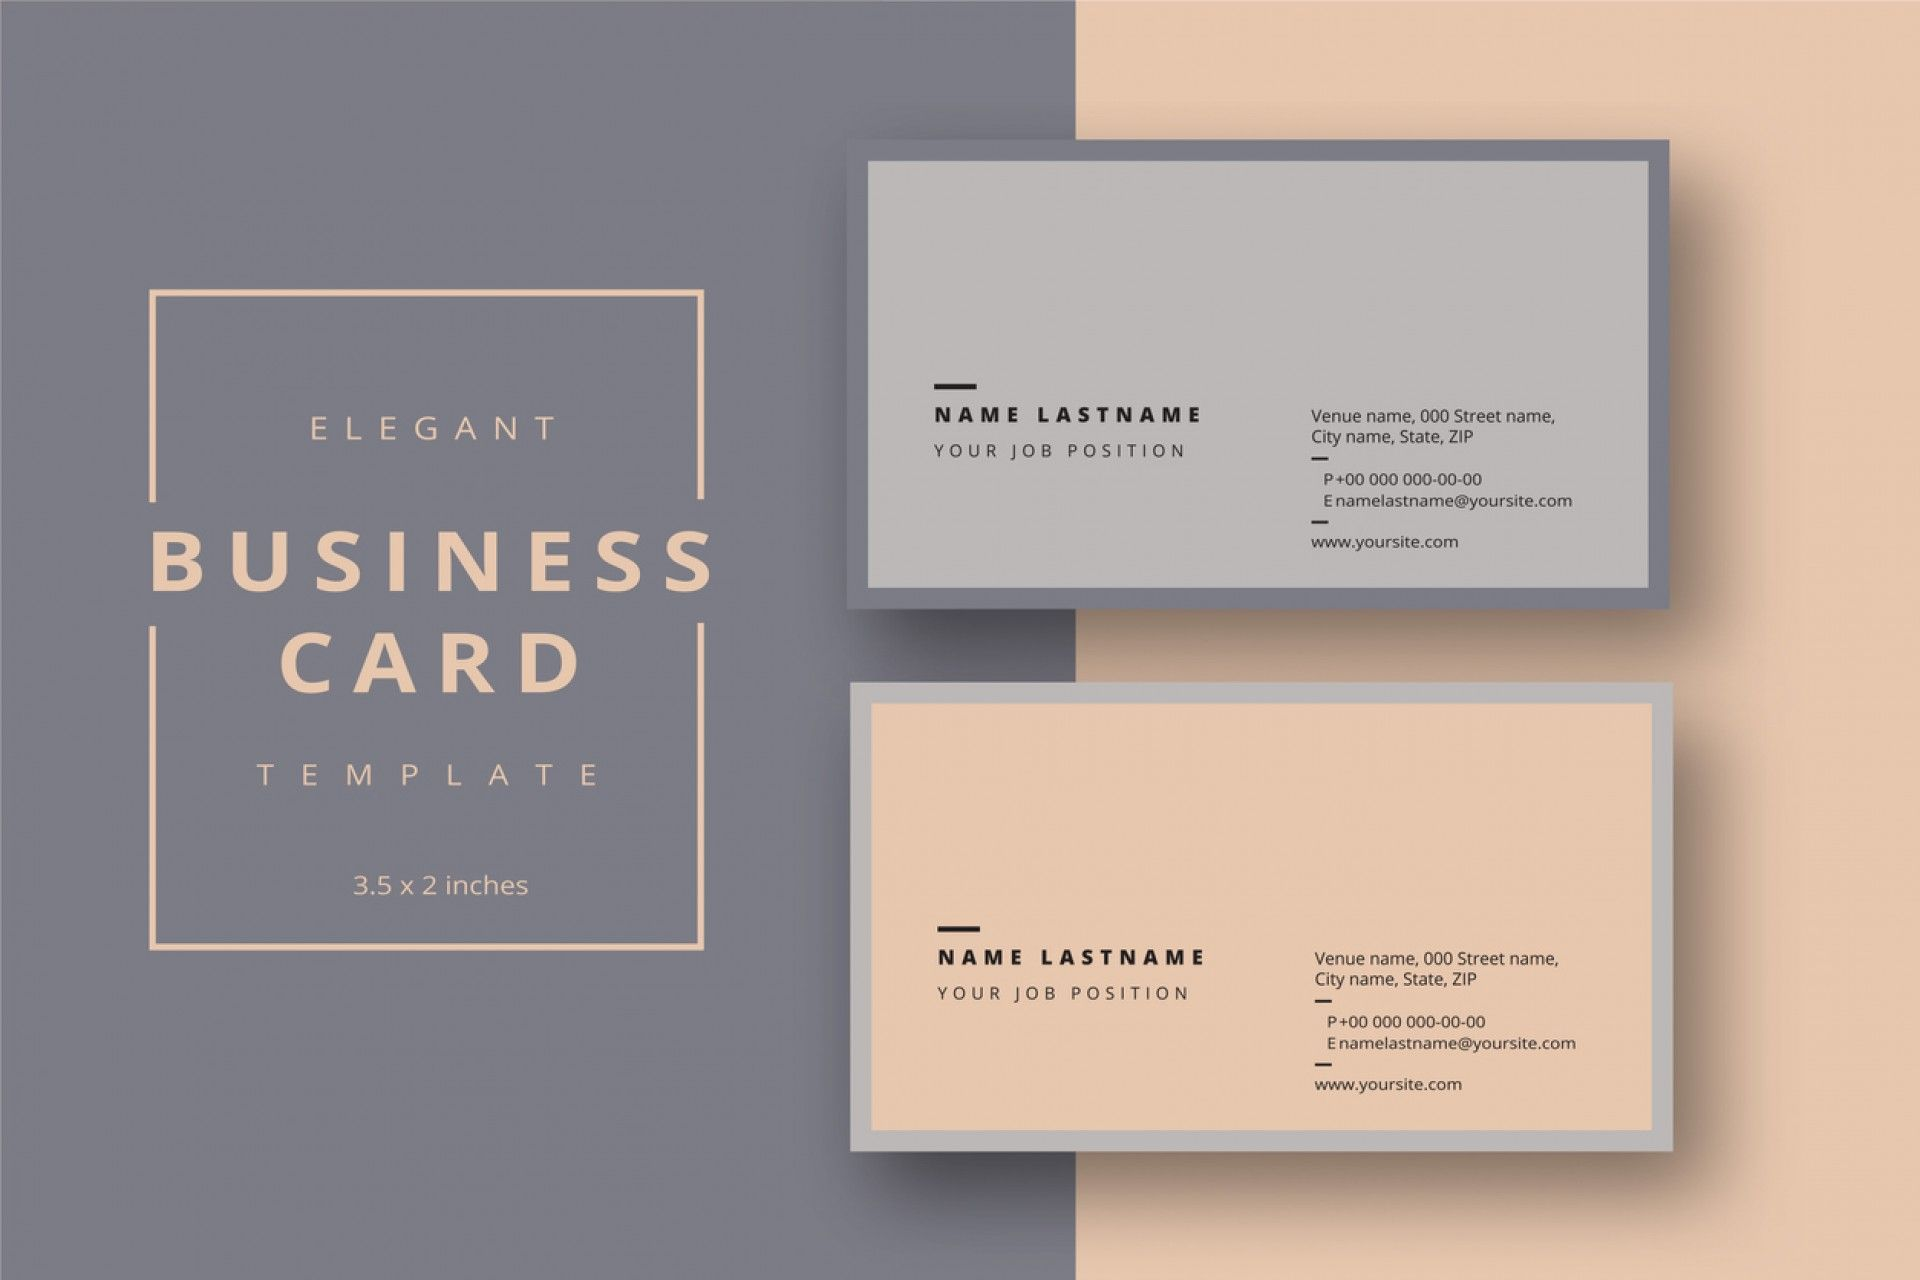 002 Awful M Office Busines Card Template High Definition  Templates Microsoft 2010 2007Full